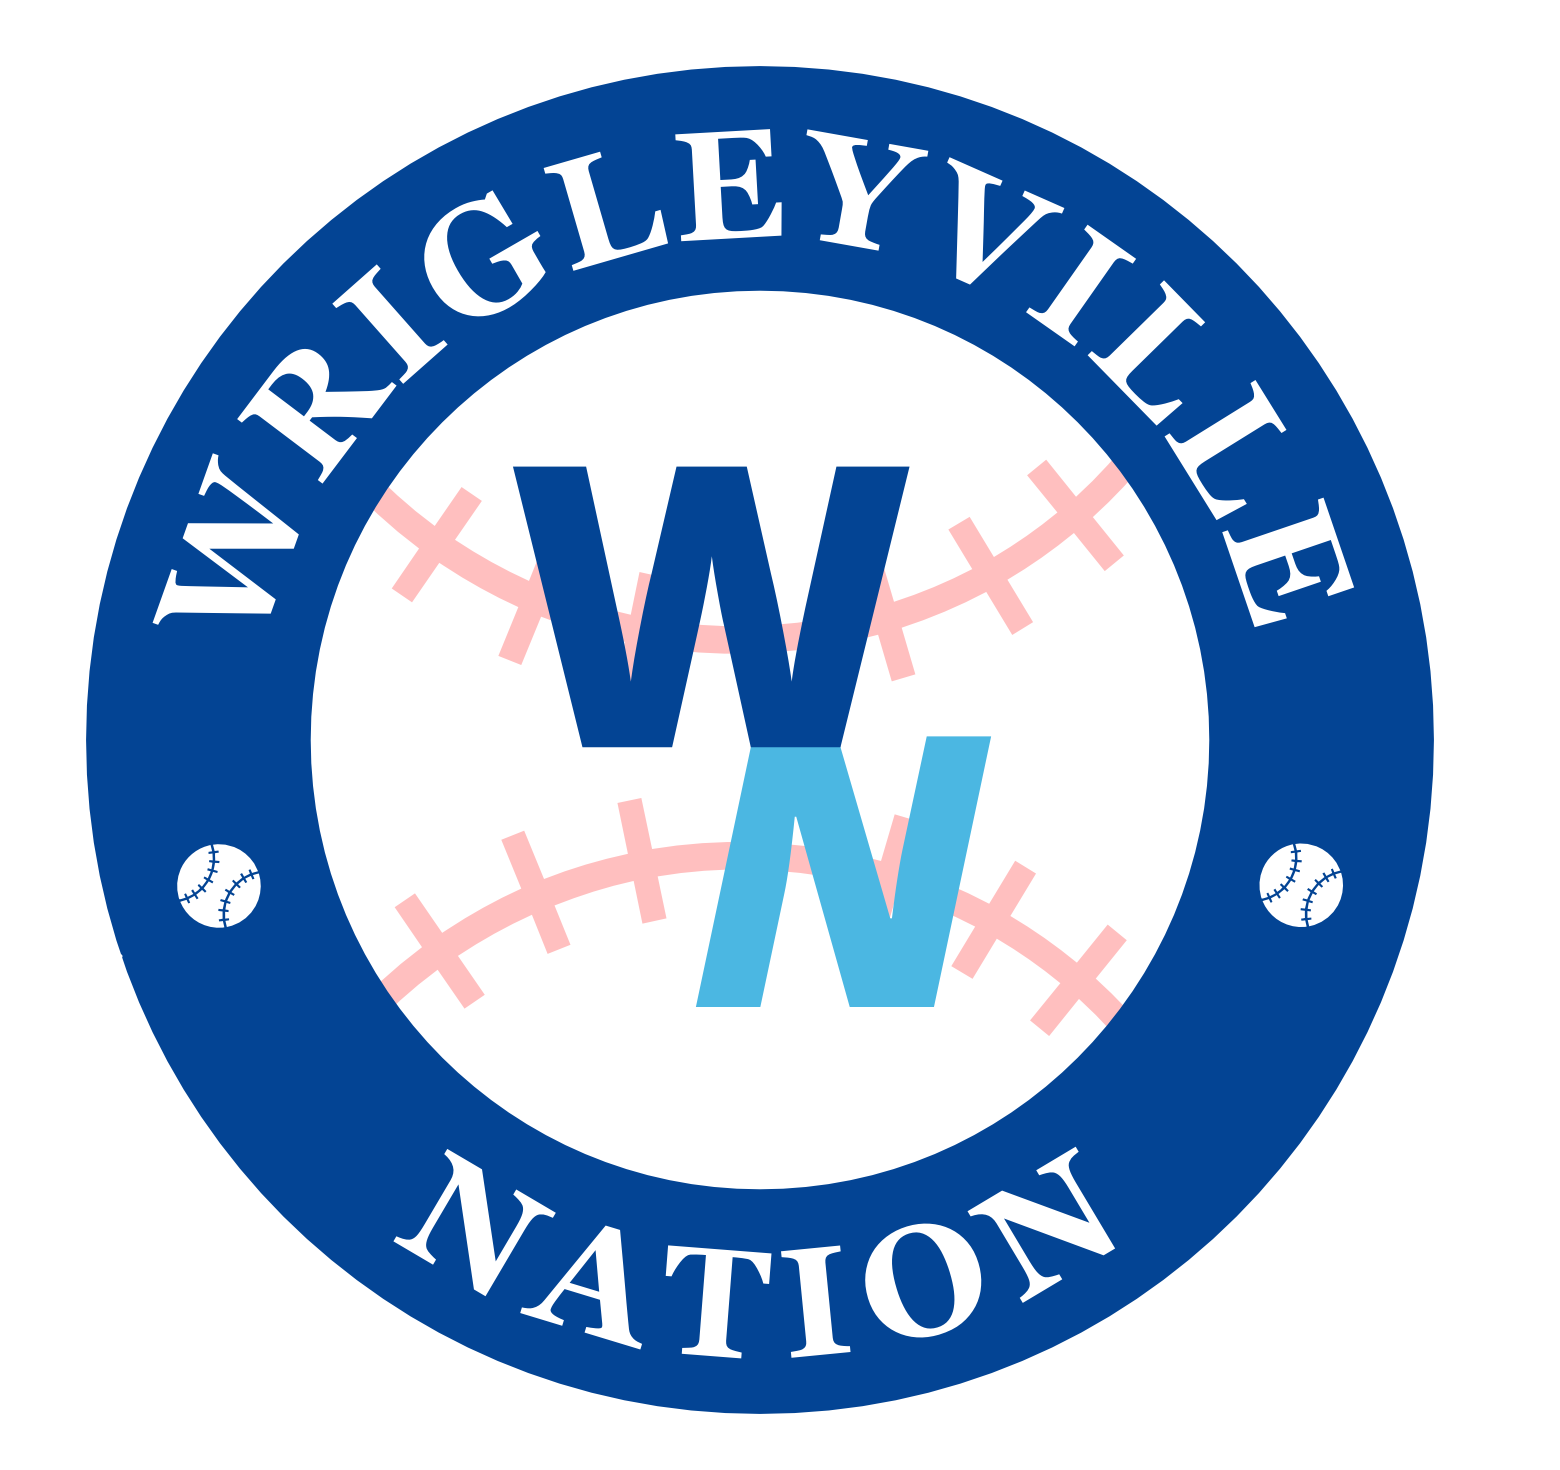 Wrigleyville Nation Ep 263 - Guest: Michael Ernst, Cubs Set All the Wrong Records, Prospect Check In, Plaques Awarded, & More show art